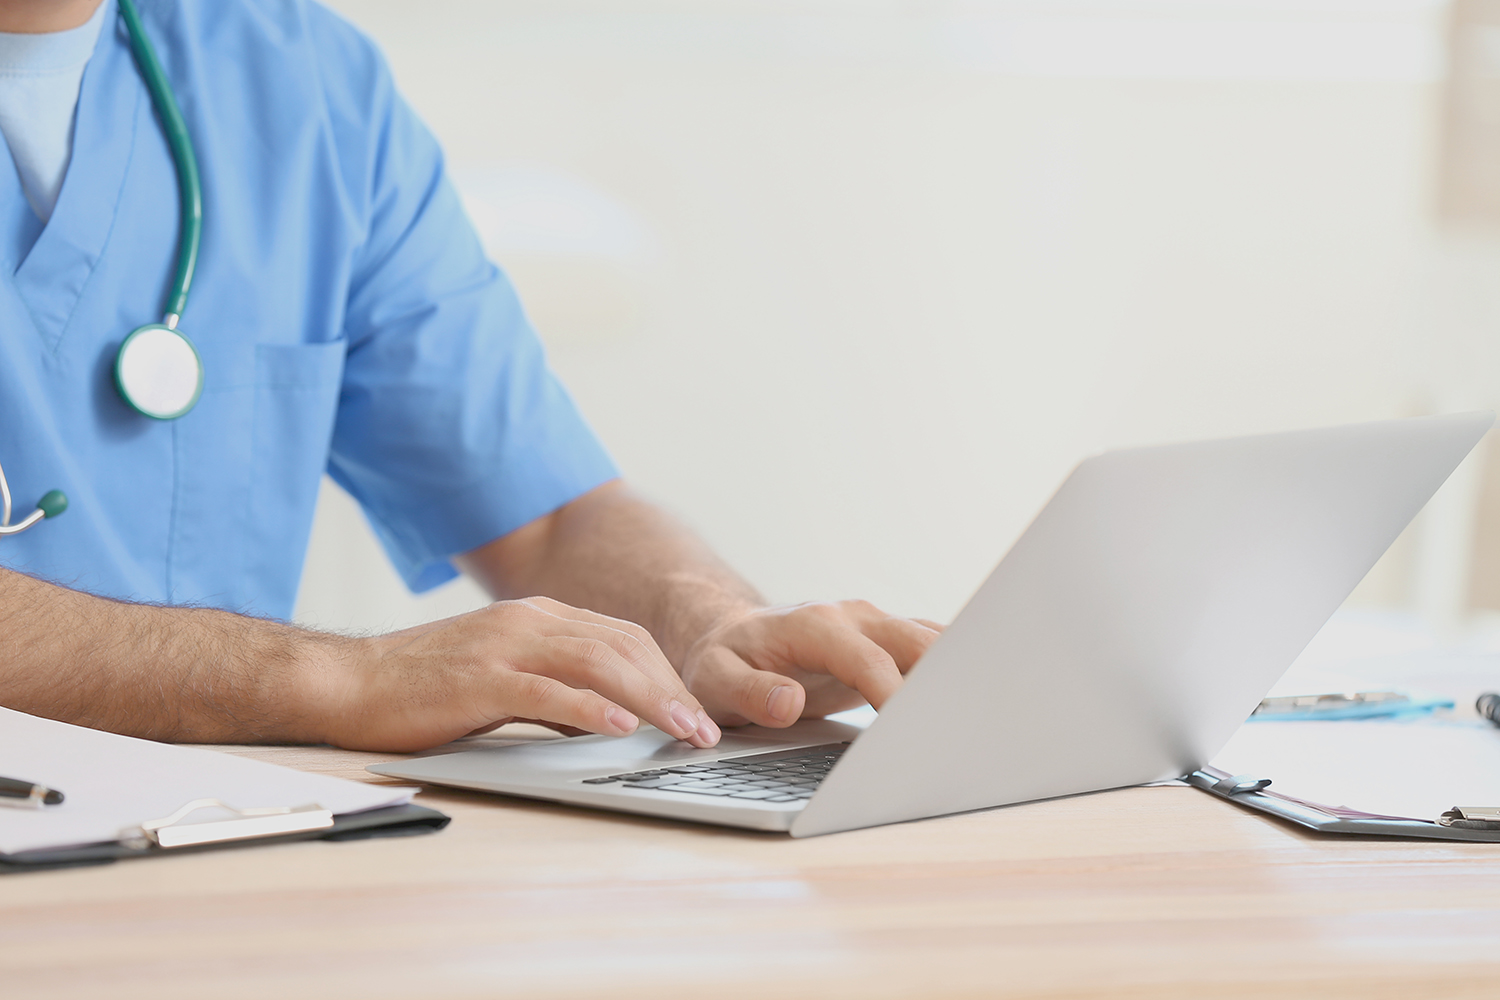 Young male doctor working on laptop in clinic, closeup